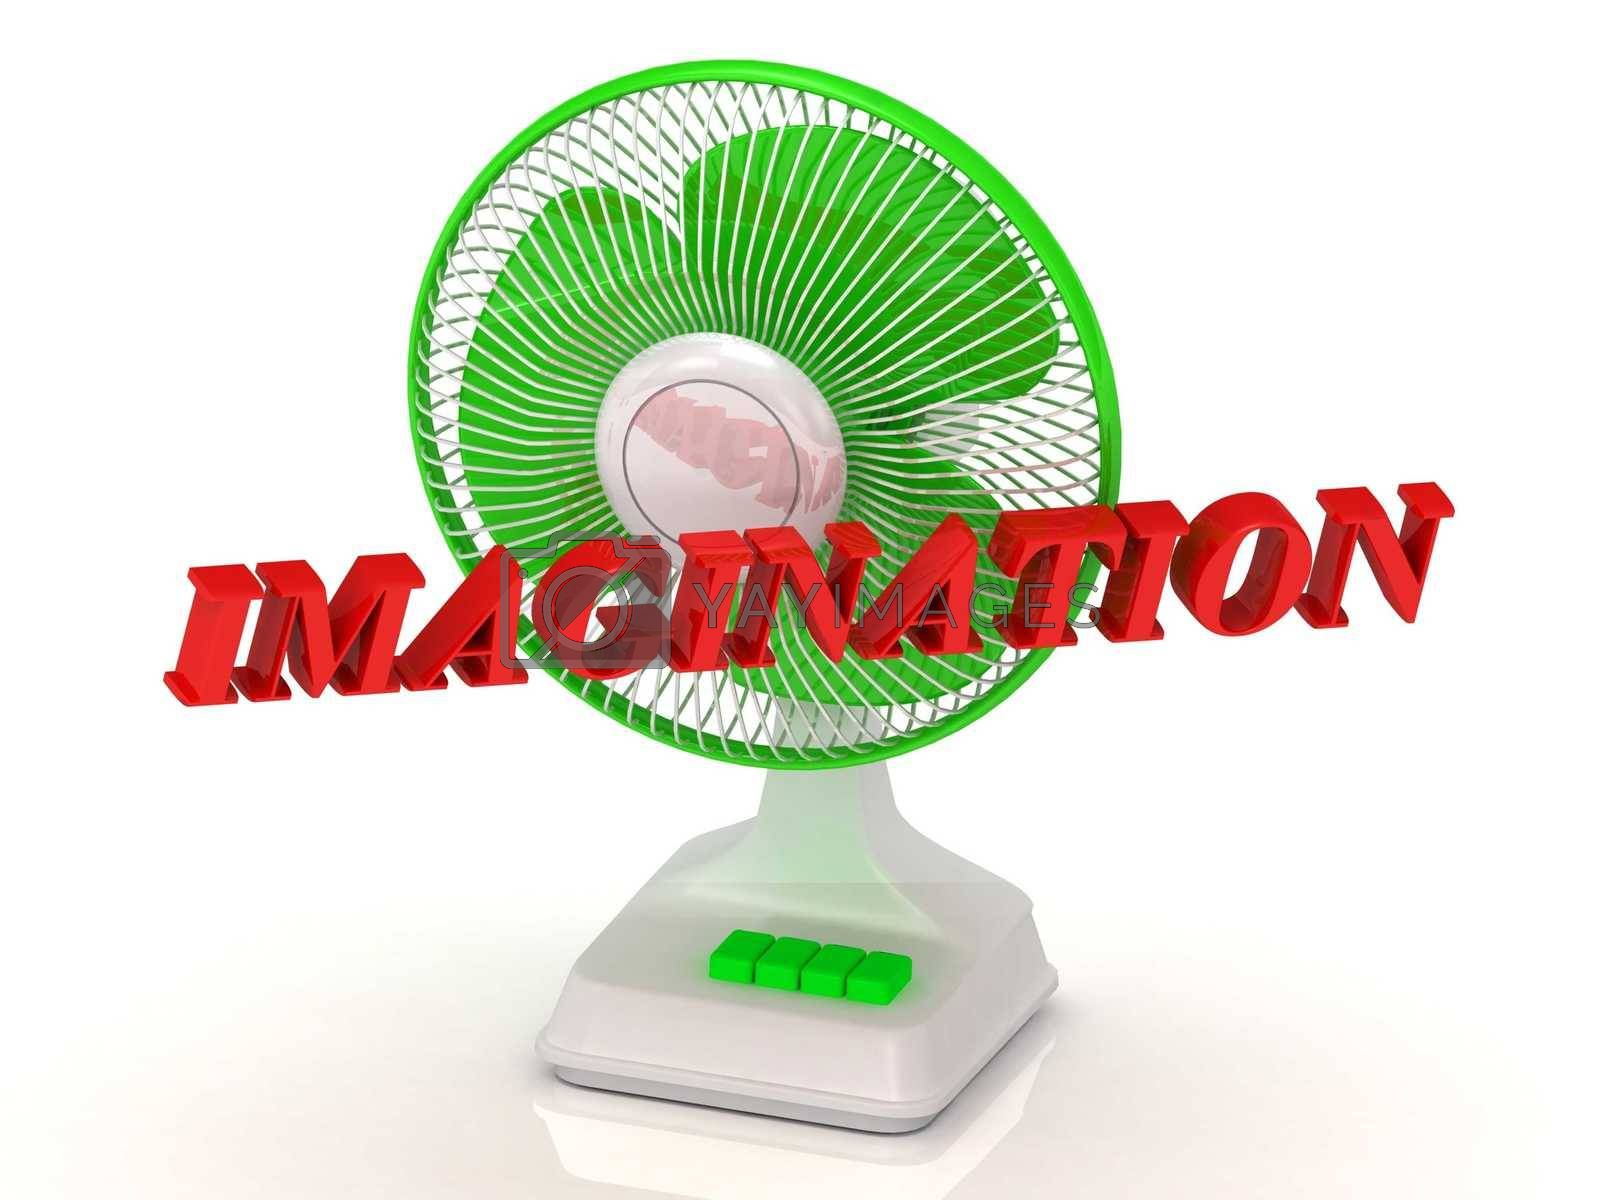 IMAGINATION- Green Fan propeller and bright color letters on a white background